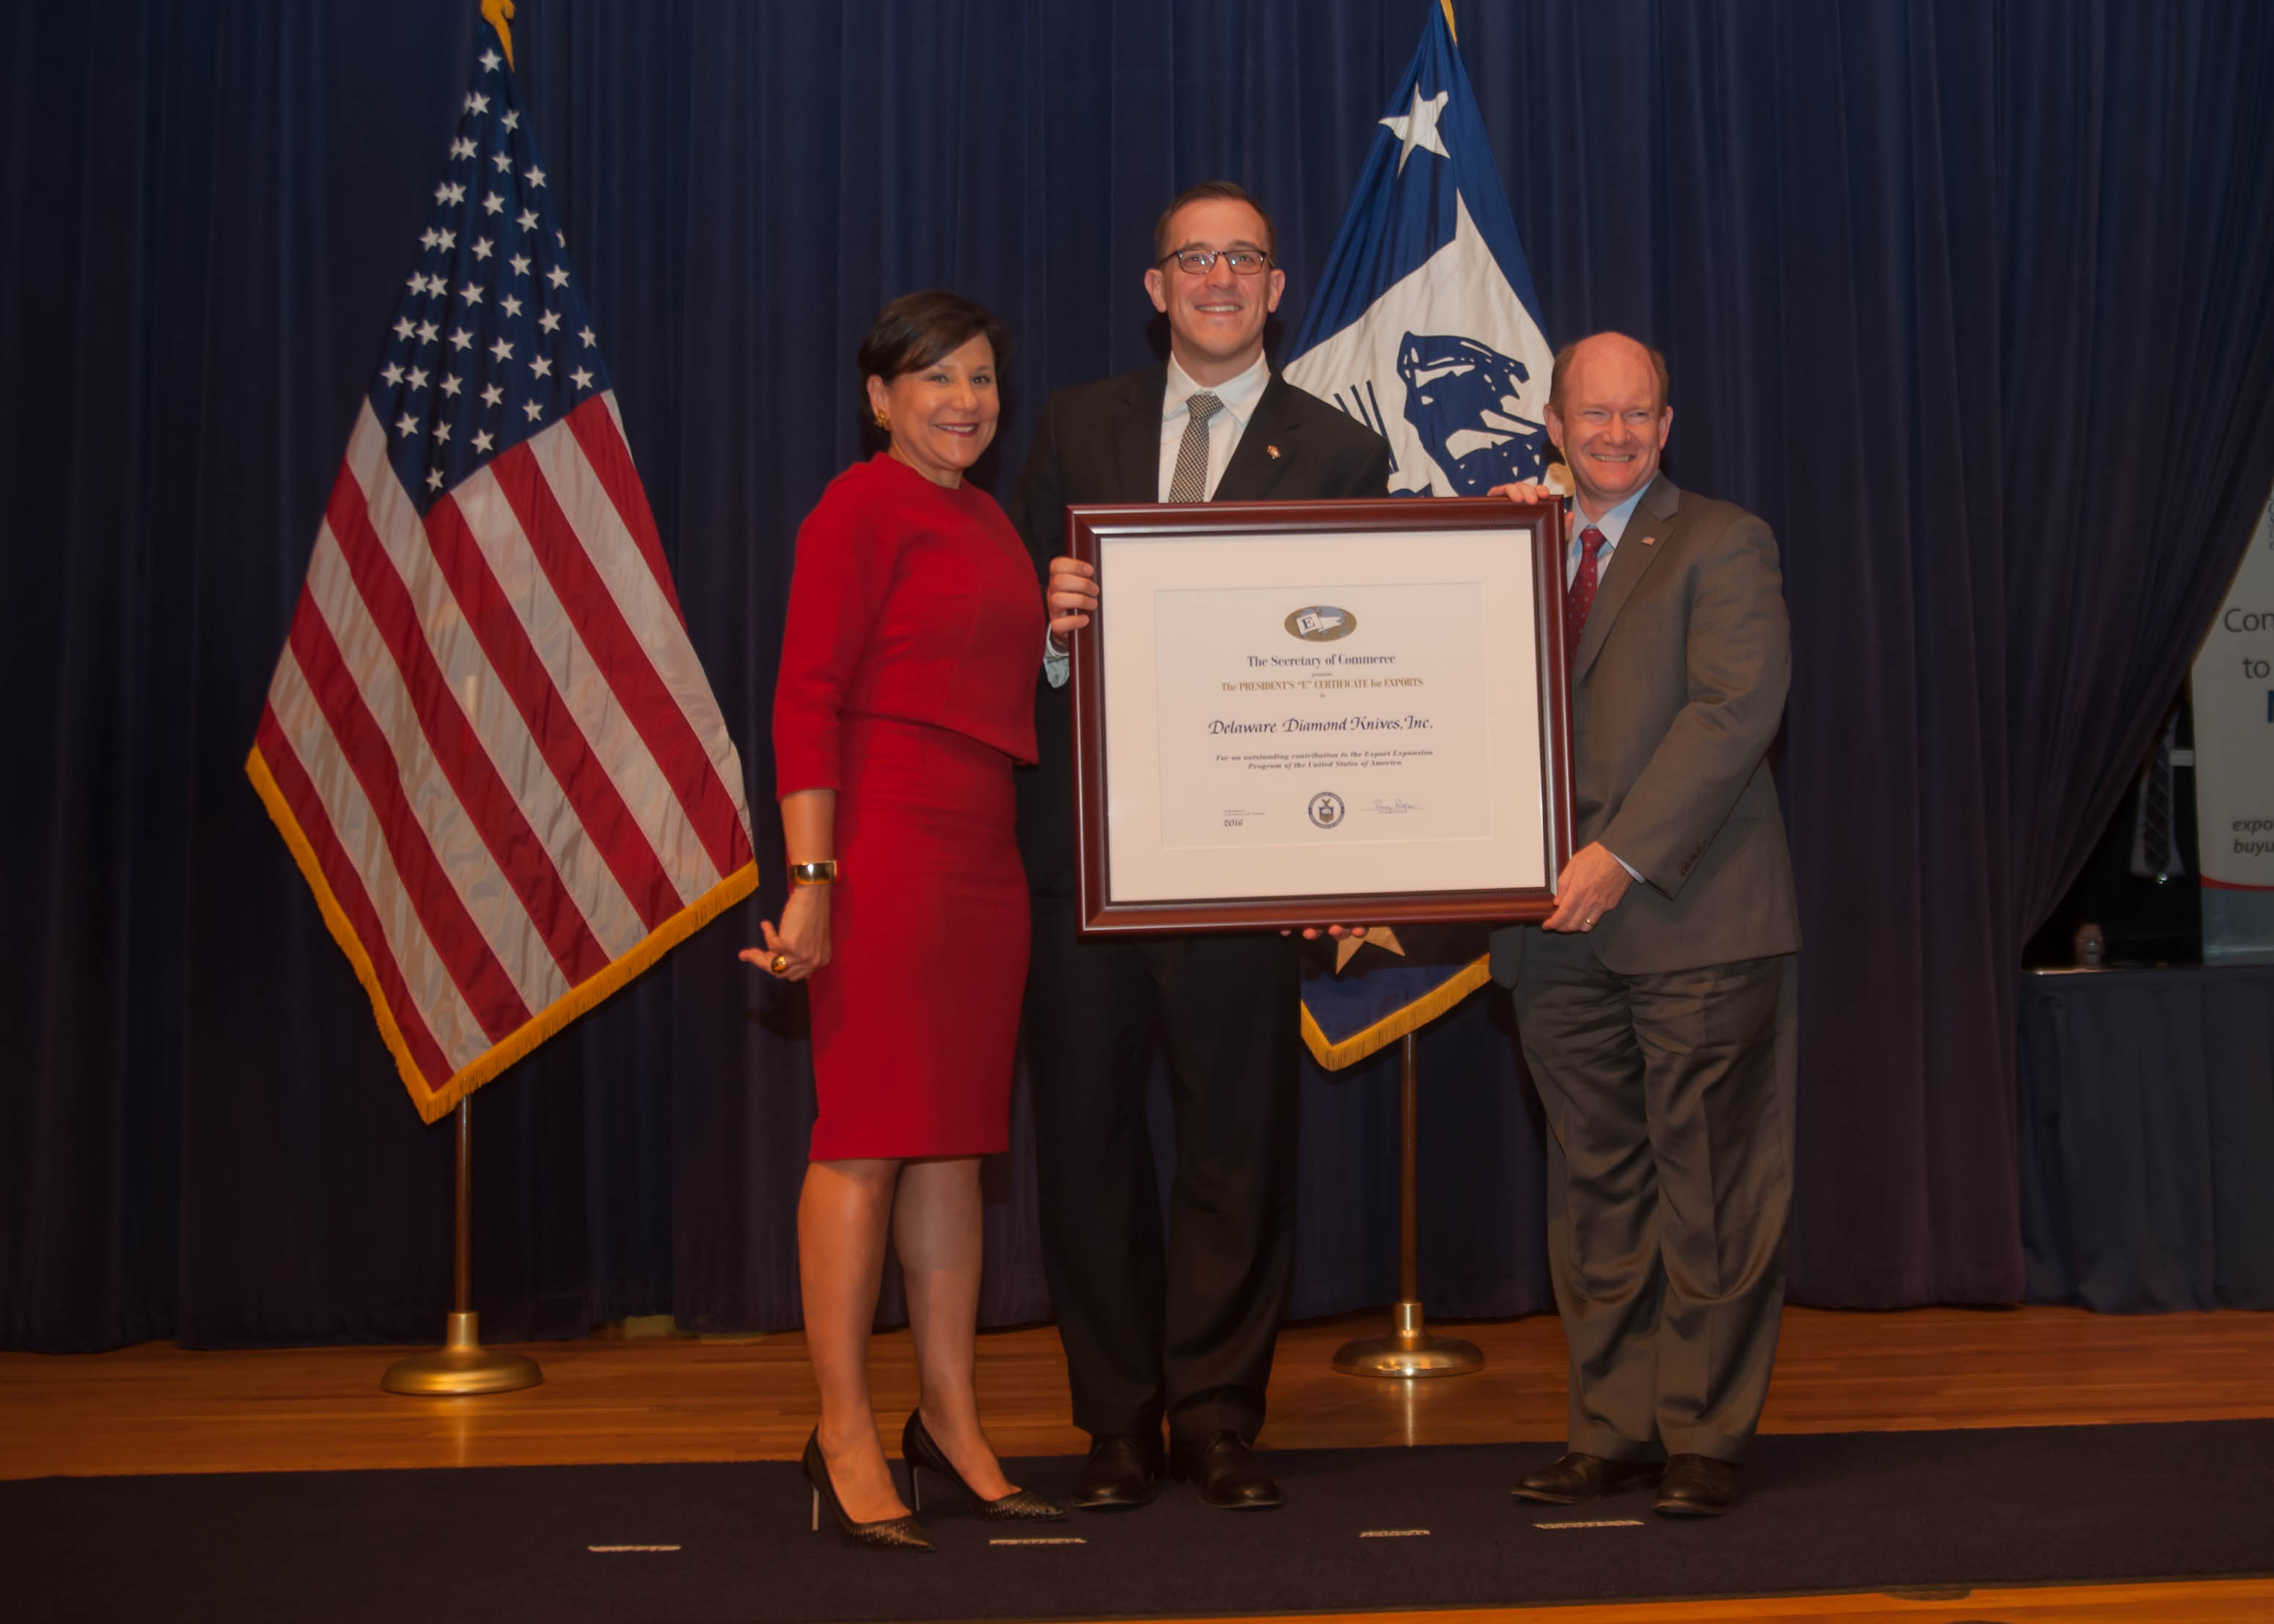 Delaware Diamond Knives honored by U.S. Secretary of Commerce for export achievements